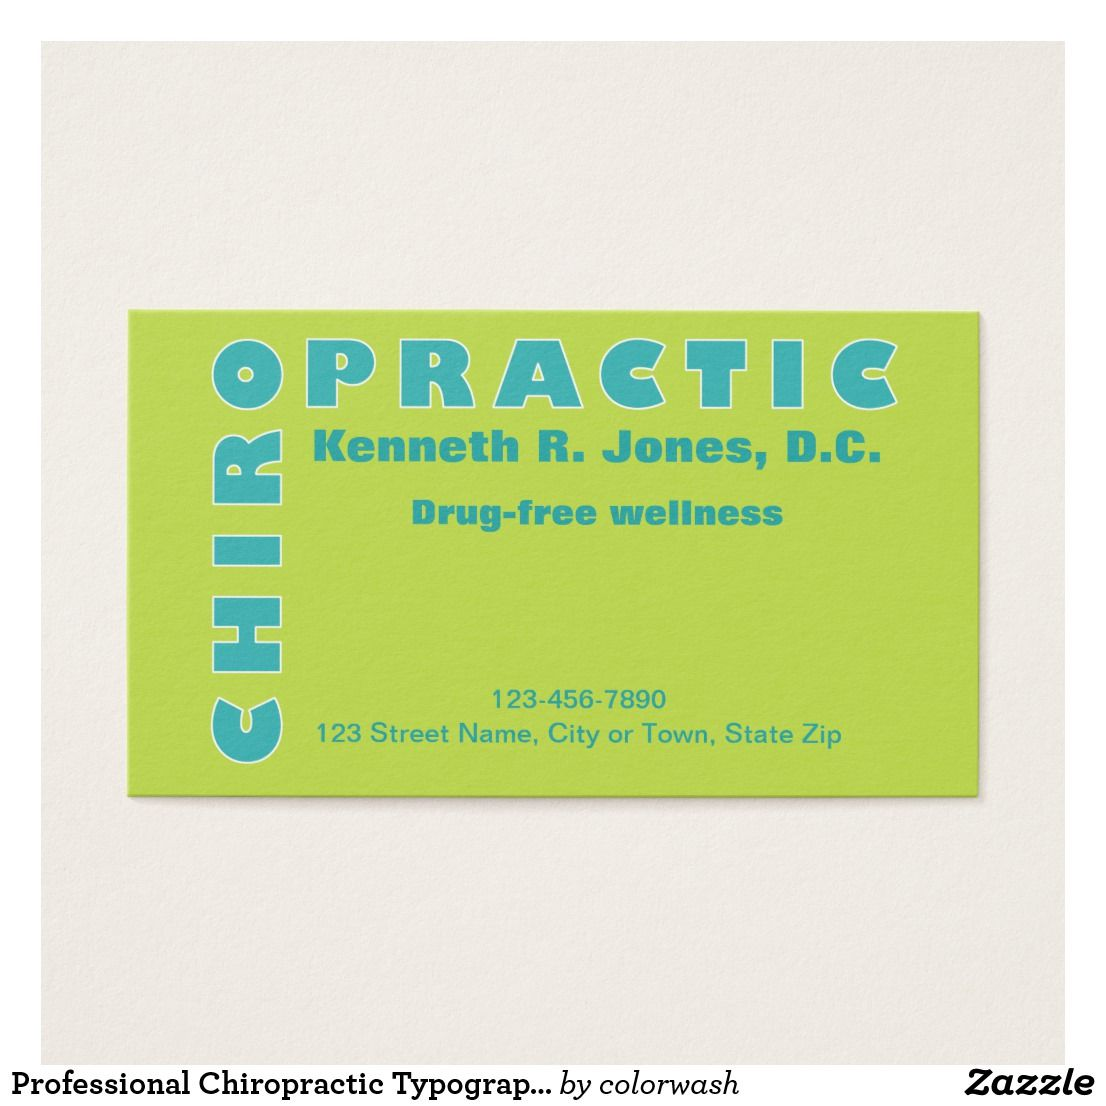 Professional Chiropractic Typographic Appointment Business Card ...